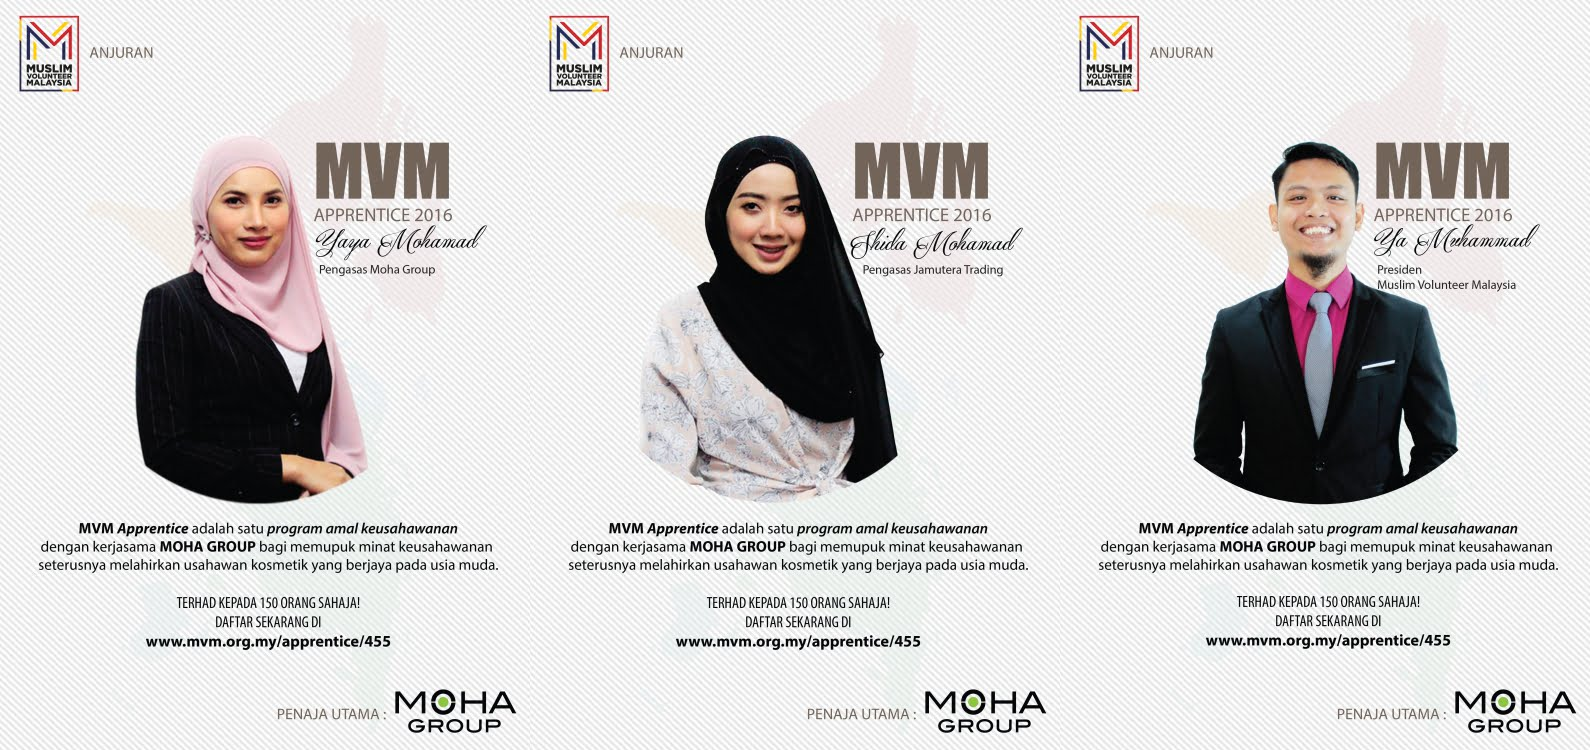 panel-mvm-org-my-preview-mvm-apprentice